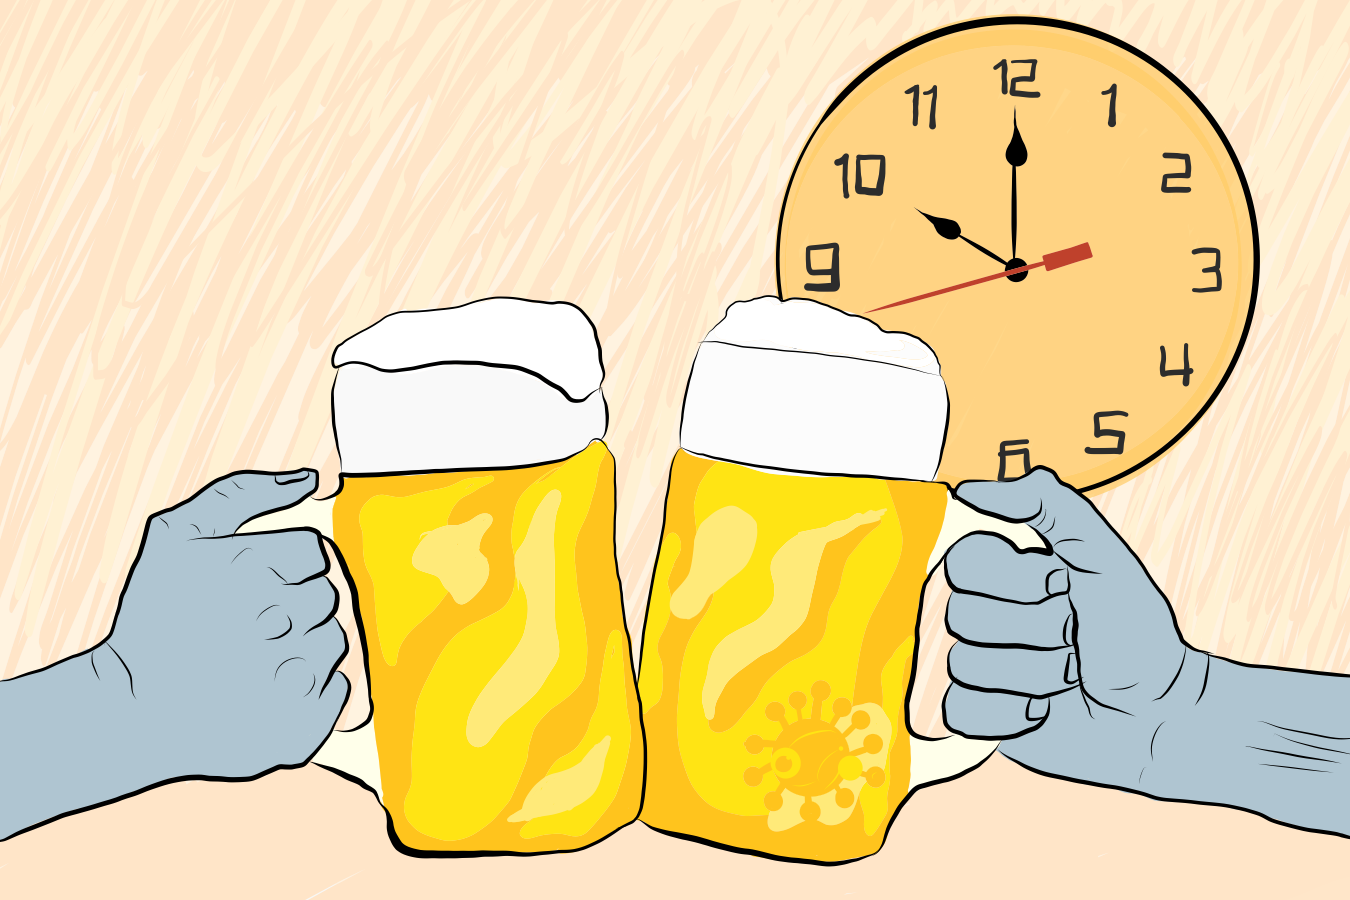 Last Call for COVID: To Avoid Bar Shutdowns, States Serve Up Curfews